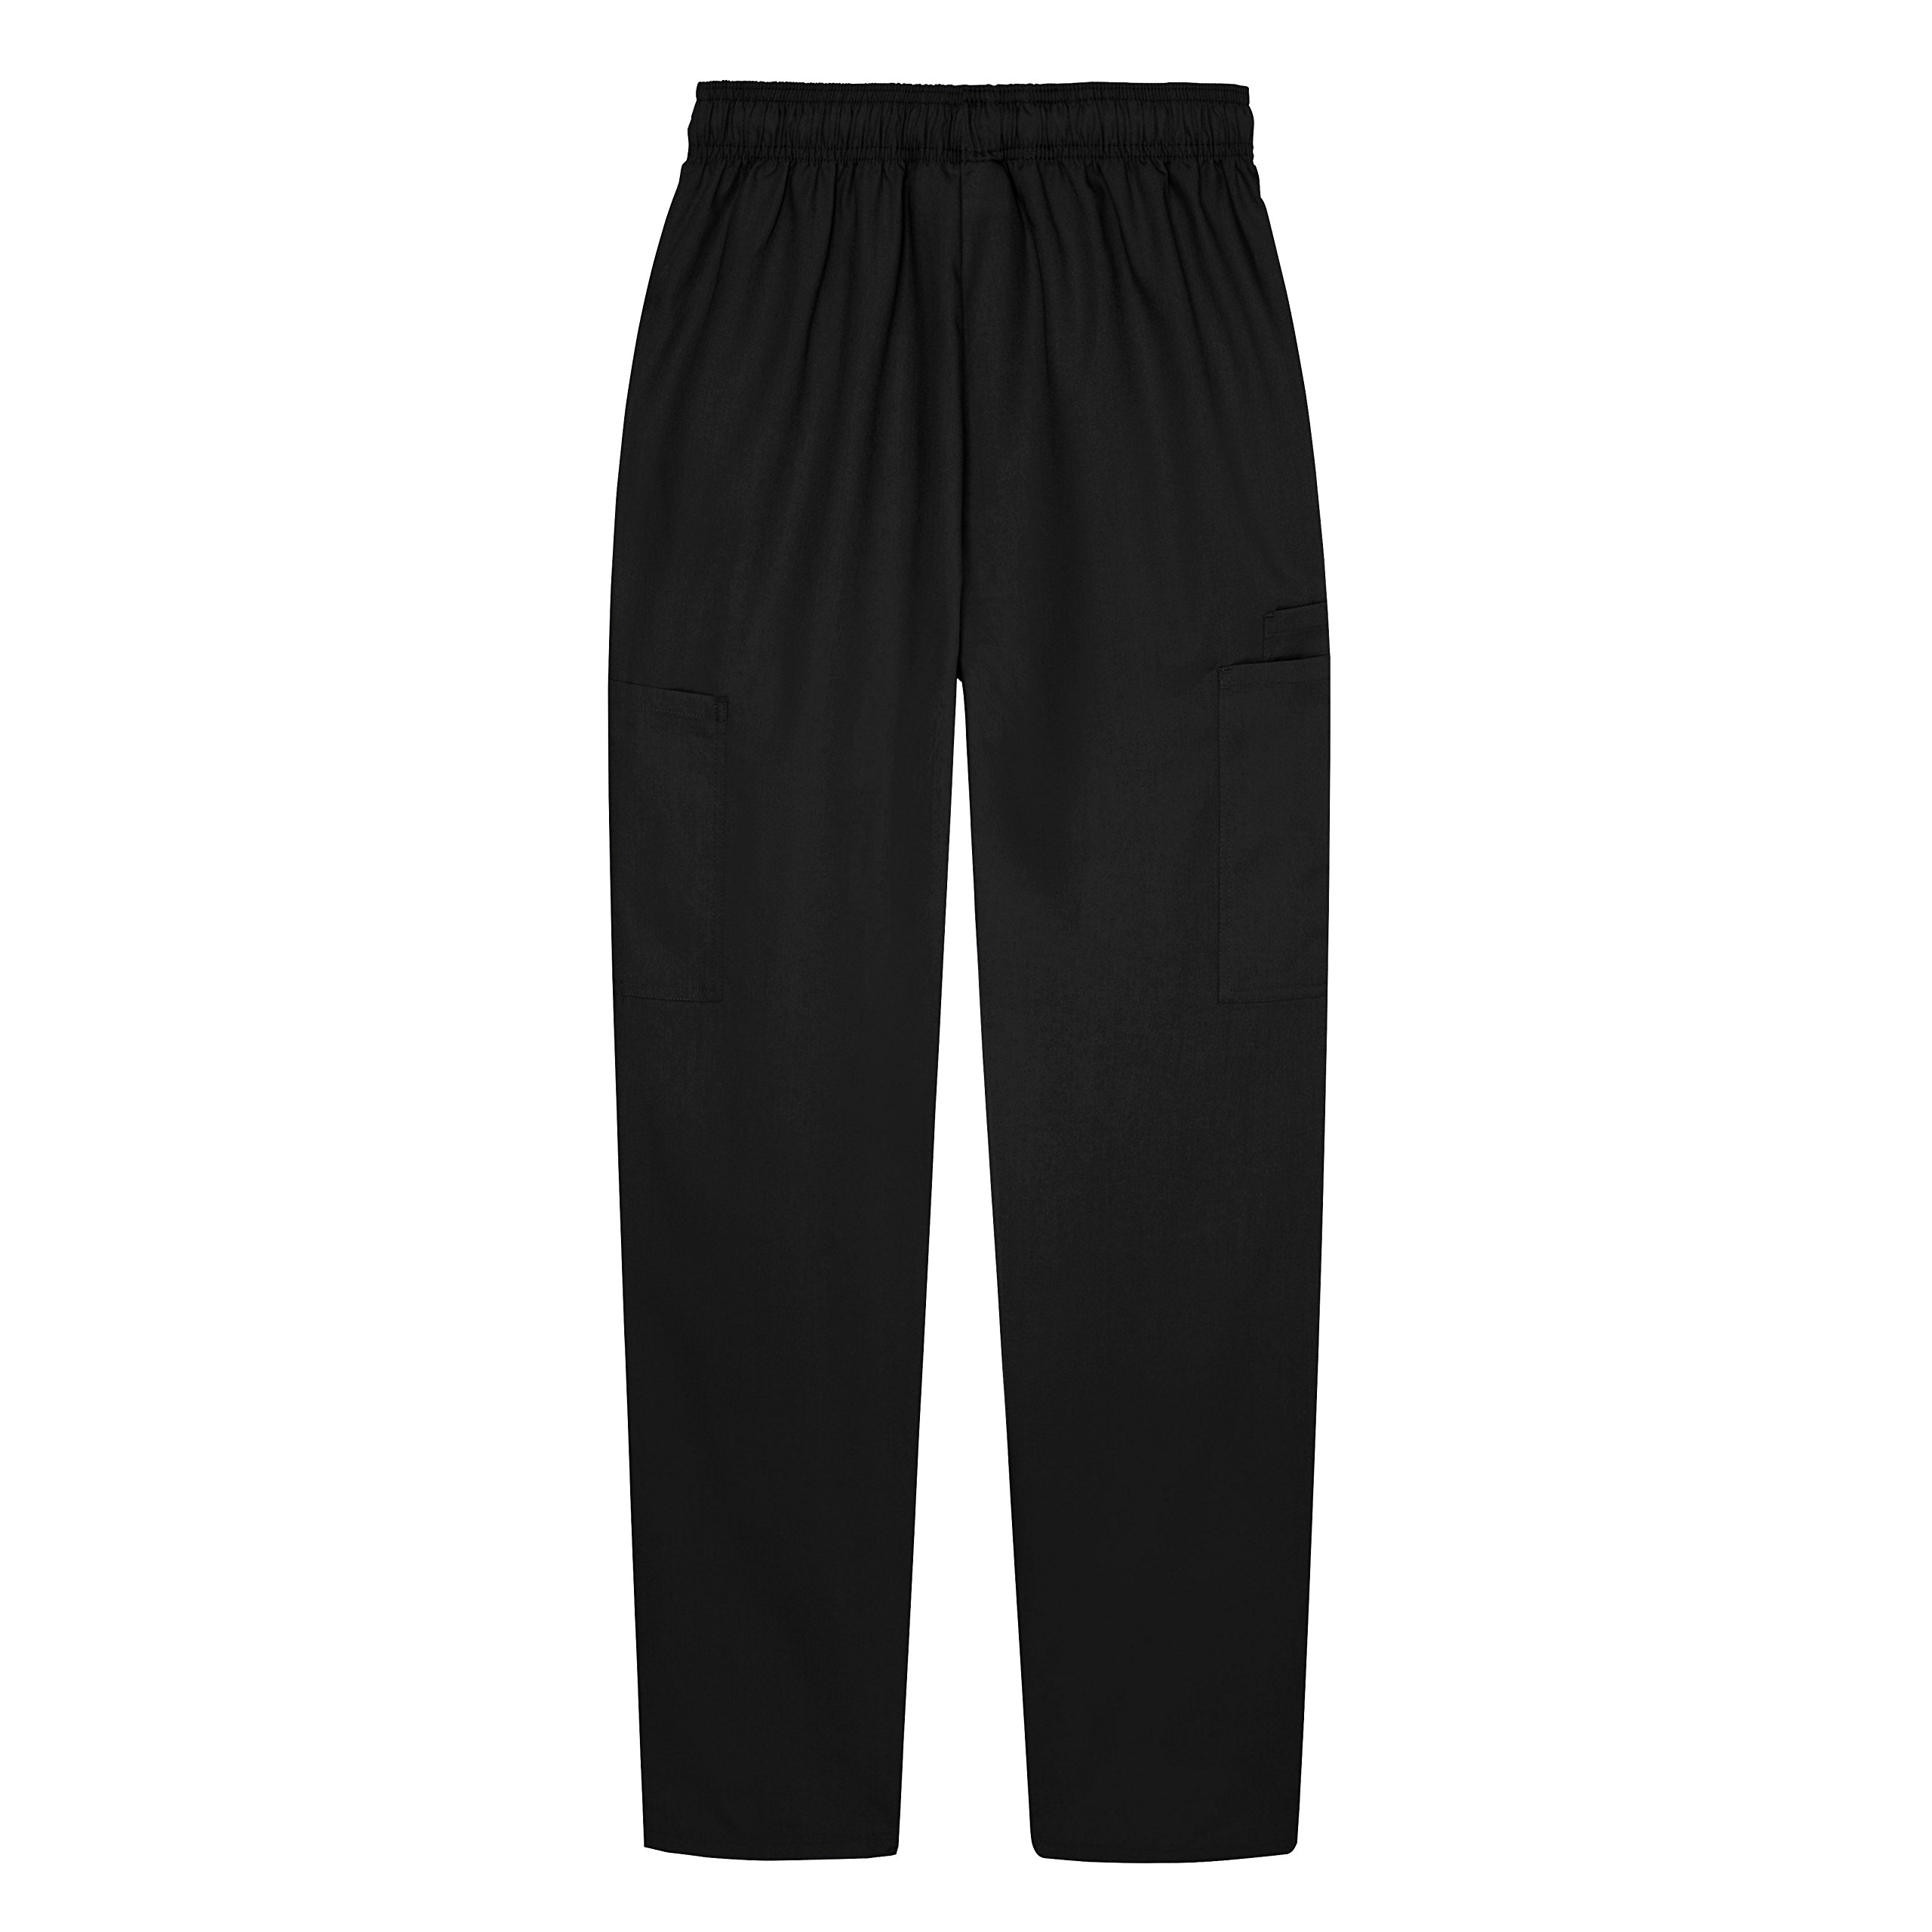 Sivvan Women's Scrubs Drawstring Cargo Pants (Available in 12 Colors) - S8200 - Black - 2X by Sivvan (Image #2)